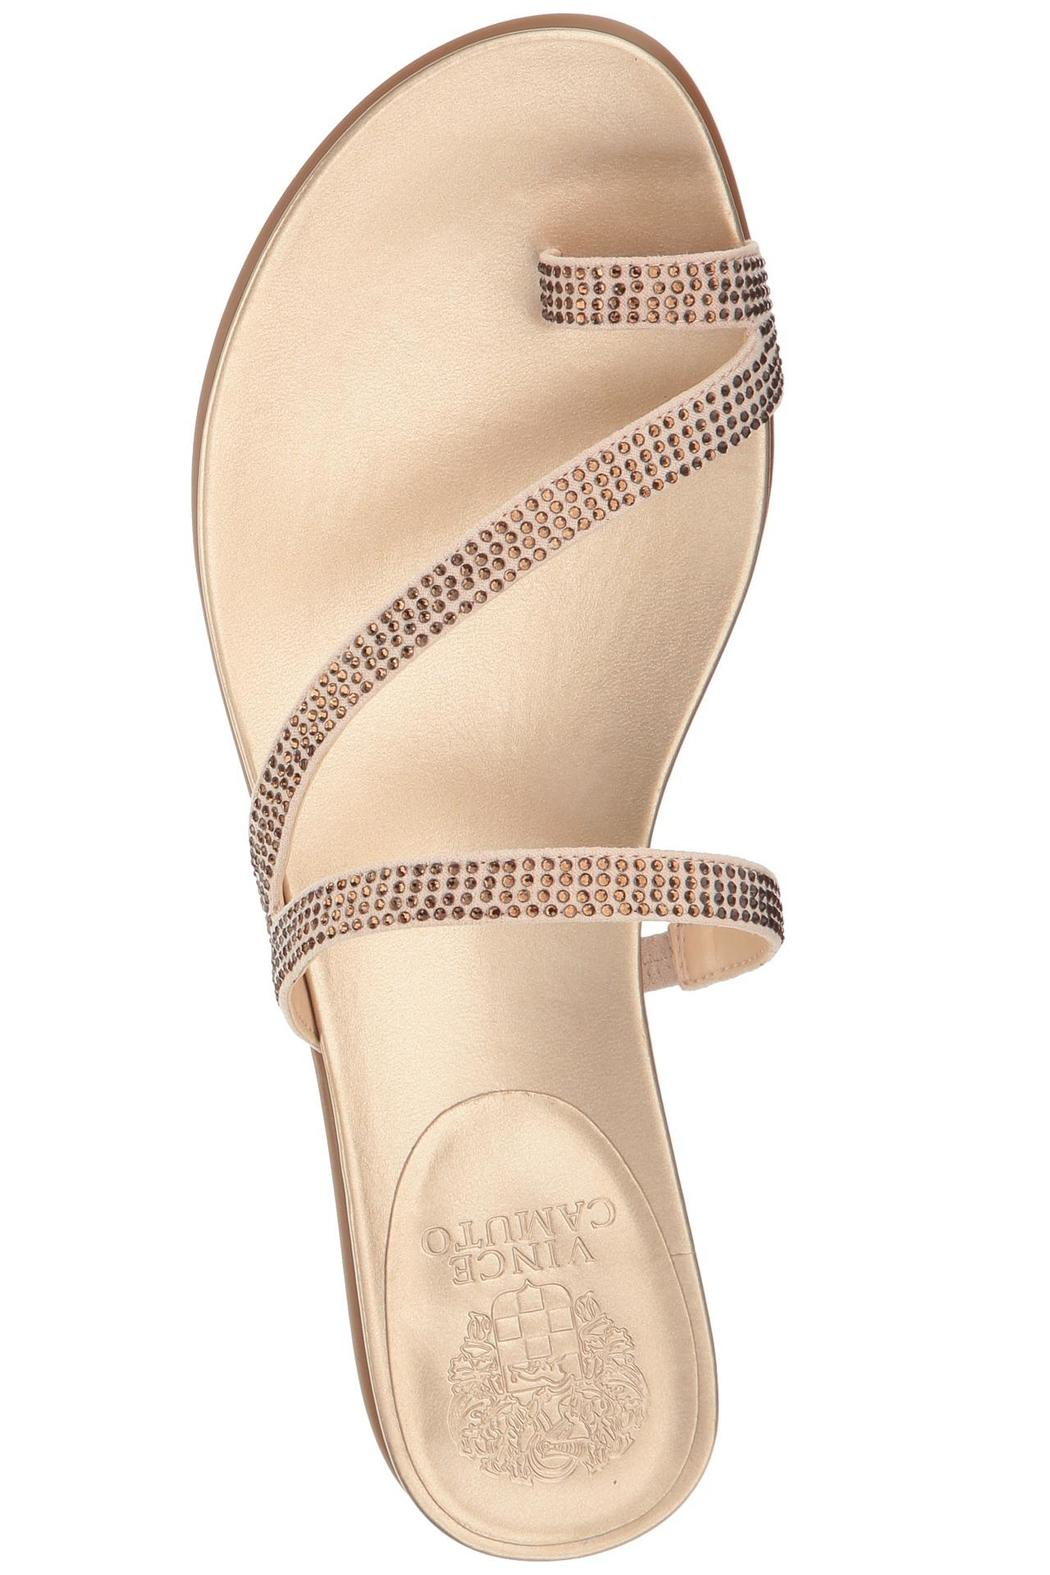 be6ed986deb01a ... Vince Camuto Evina Sparkle Sandal - Side Cropped Image in stock a237c  ae944  Vince Camuto Silver White Sandal - Front ...